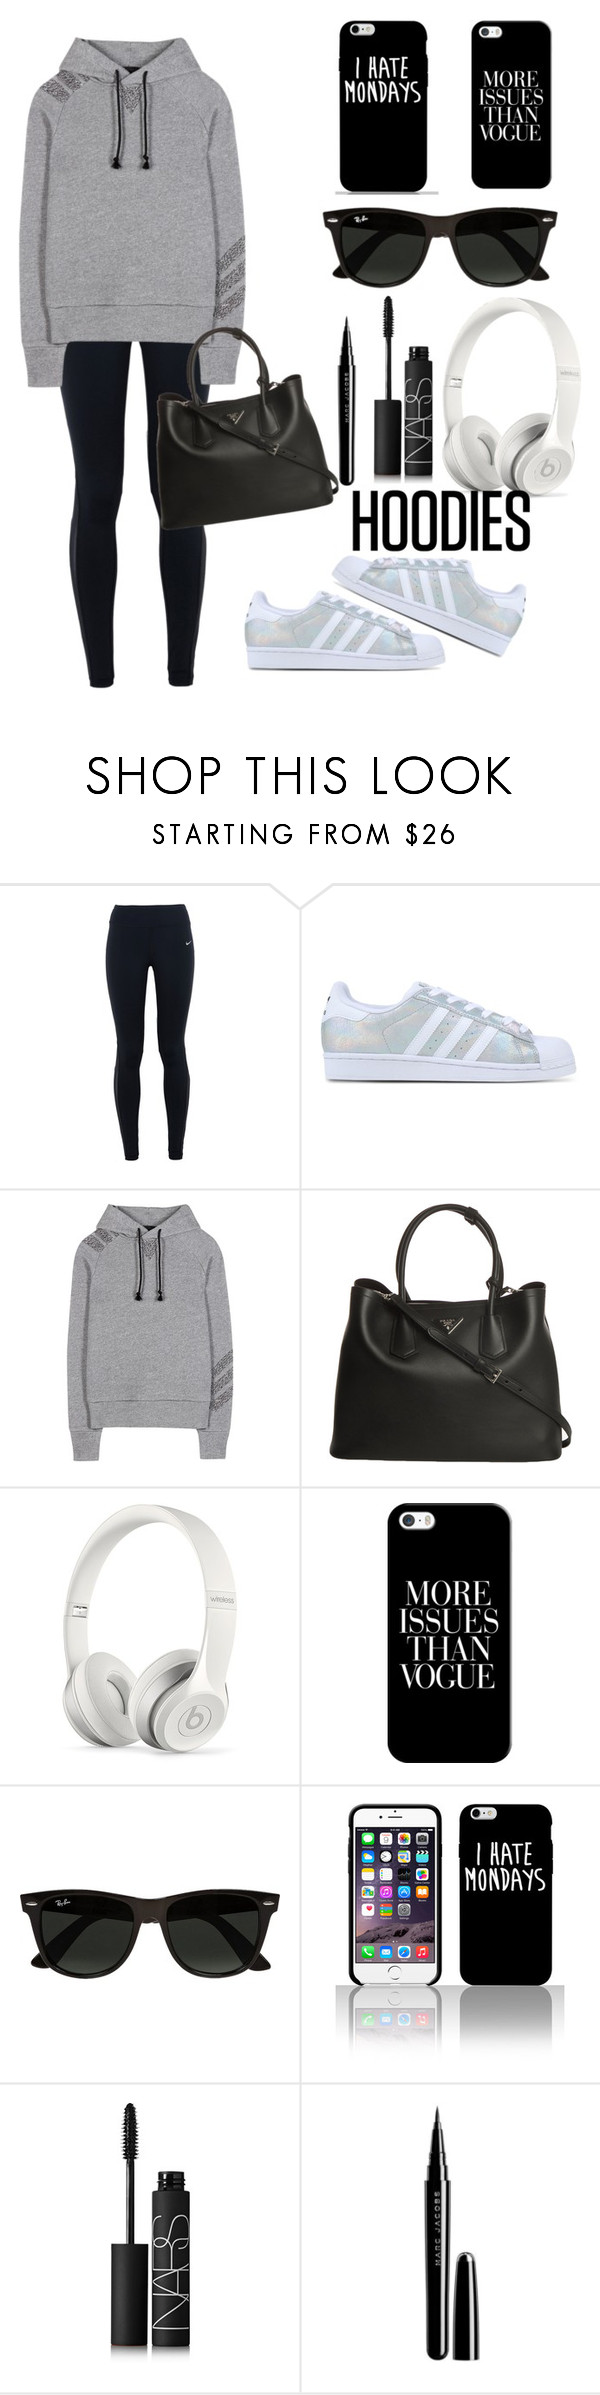 """Hoodie Casual Street Style"" by daphneev11 ❤ liked on Polyvore featuring moda, NIKE, adidas Originals, Y-3, Prada, Beats by Dr. Dre, Casetify, Ray-Ban, NARS Cosmetics y Marc Jacobs"